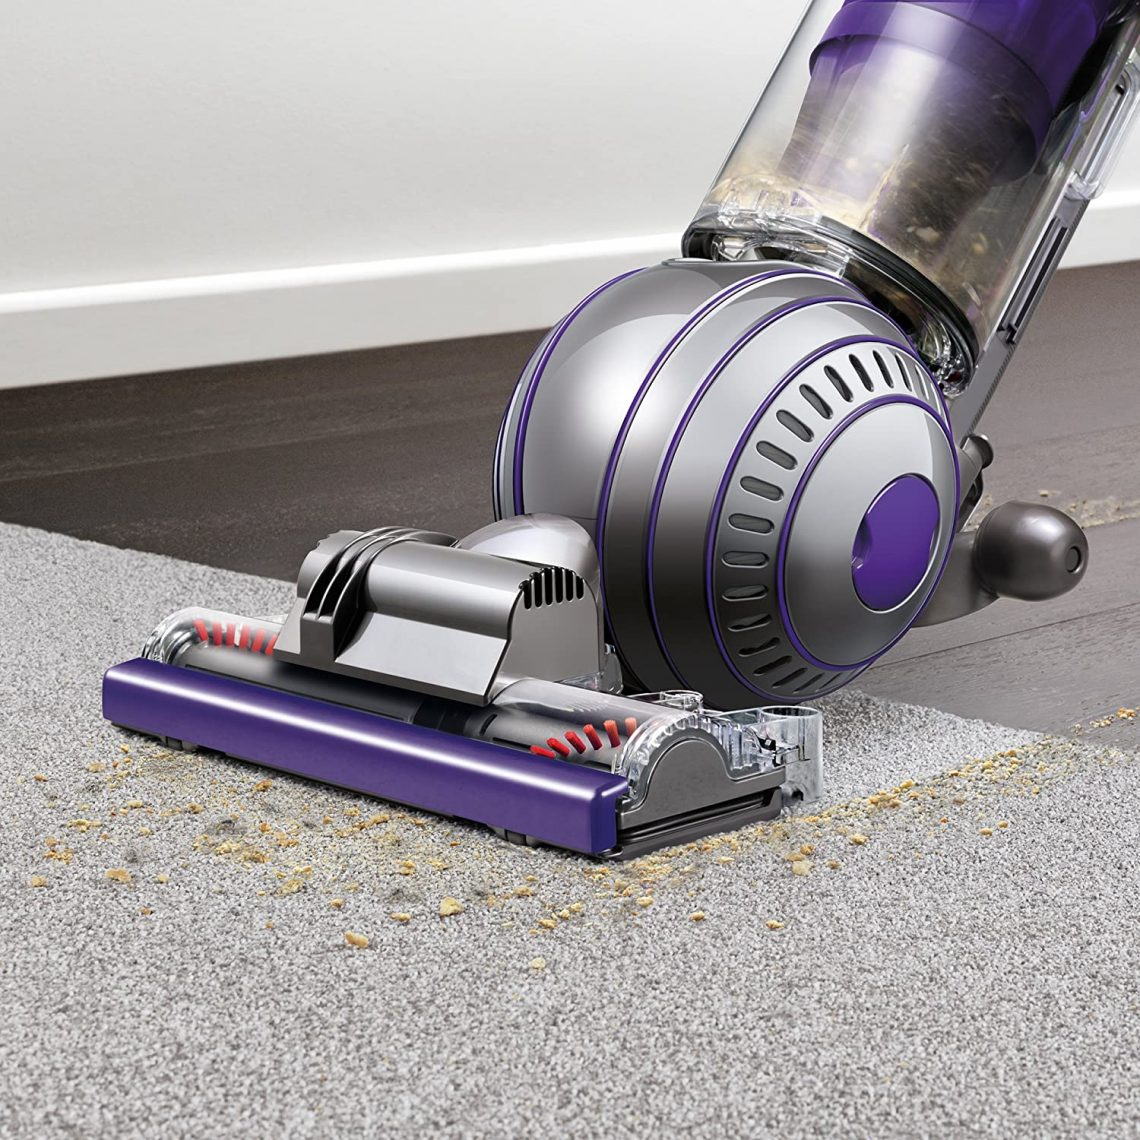 Dyson vacuum is not picking up pets hair from the carpet